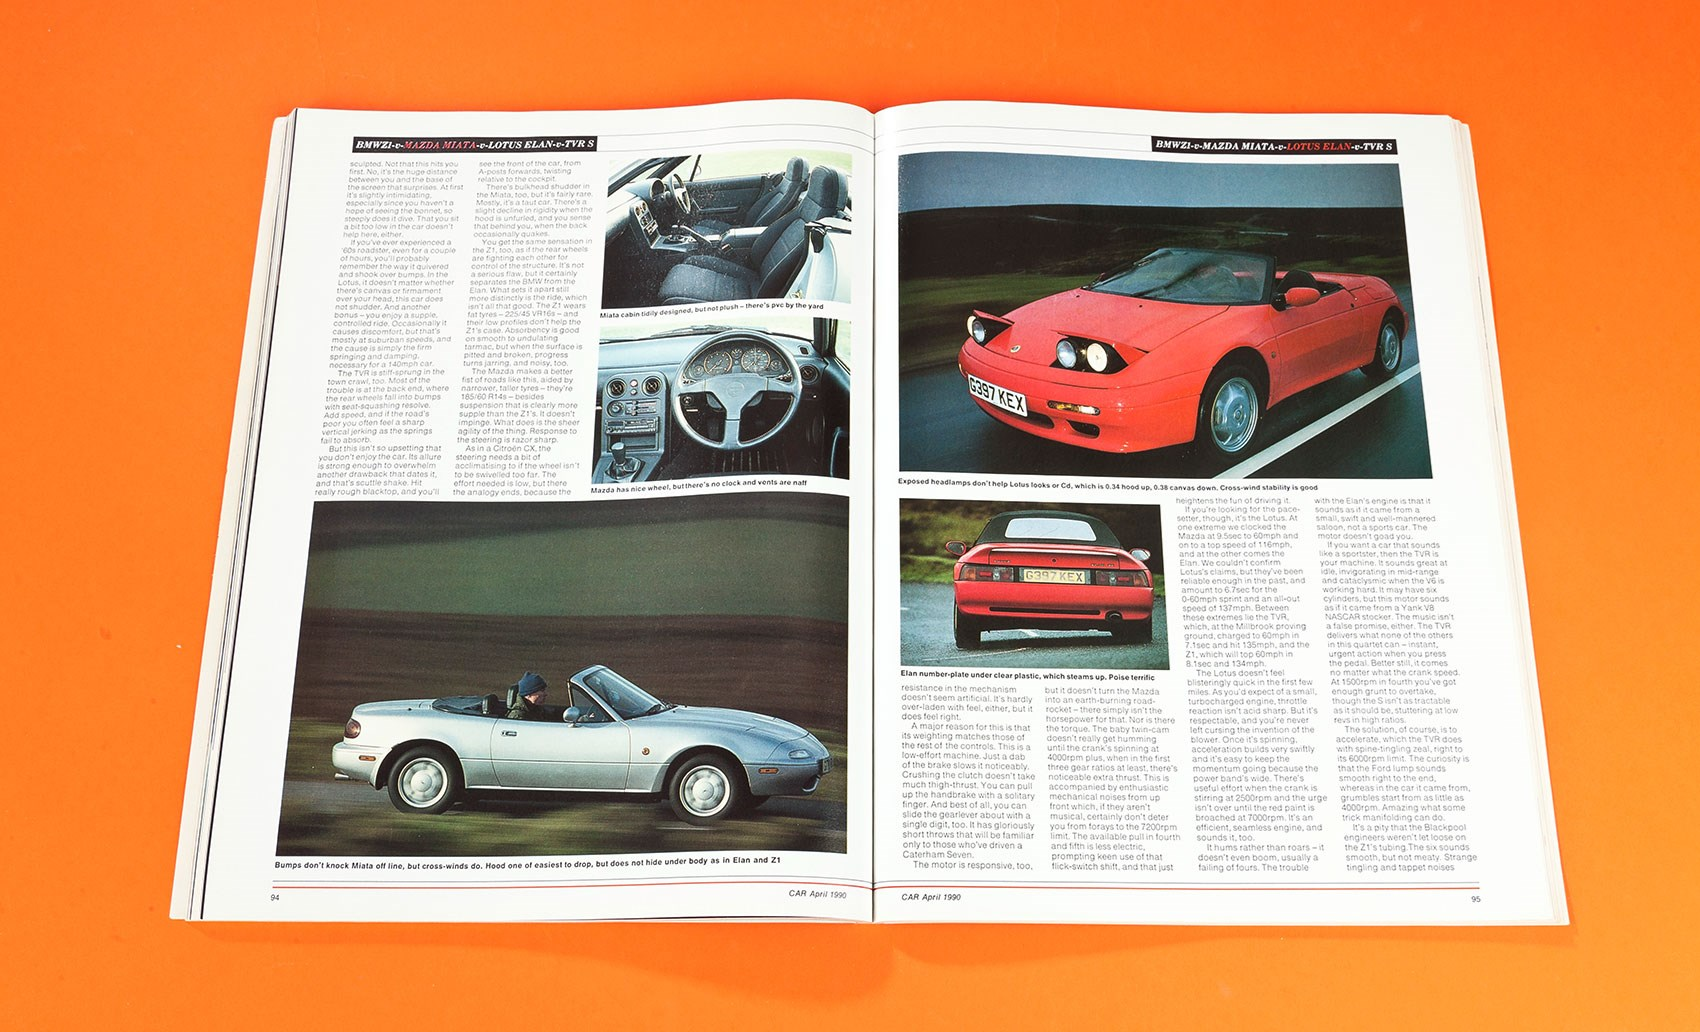 Losing our heads: BMW Z1 vs Lotus Elan vs Mazda MX-5 vs TVR